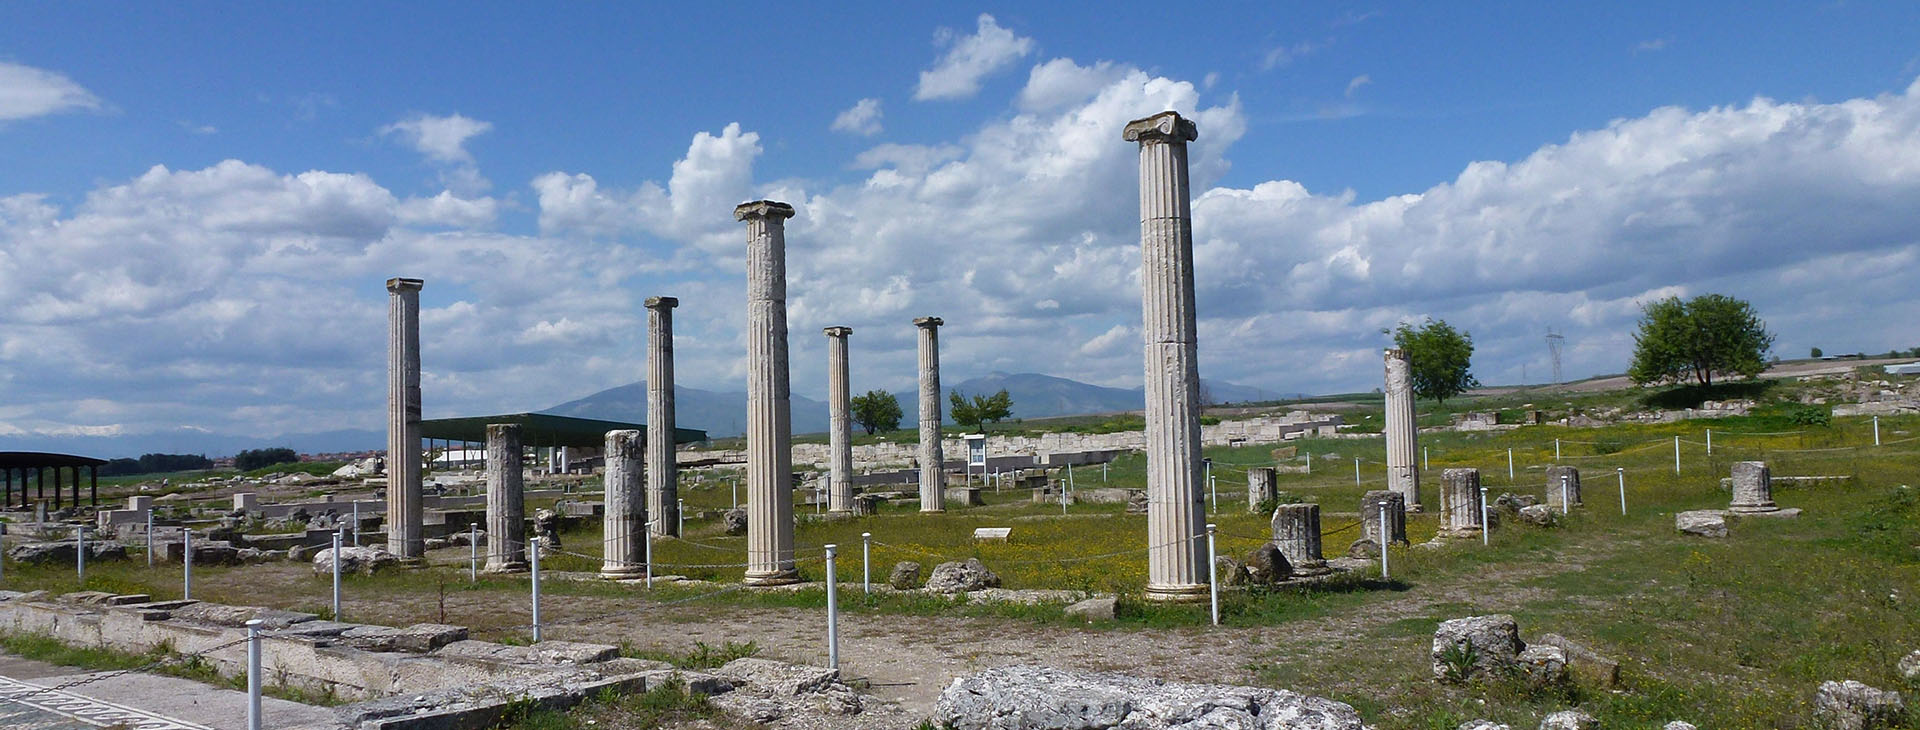 Archaeological site of Pella, the capital of ancient Macedonia